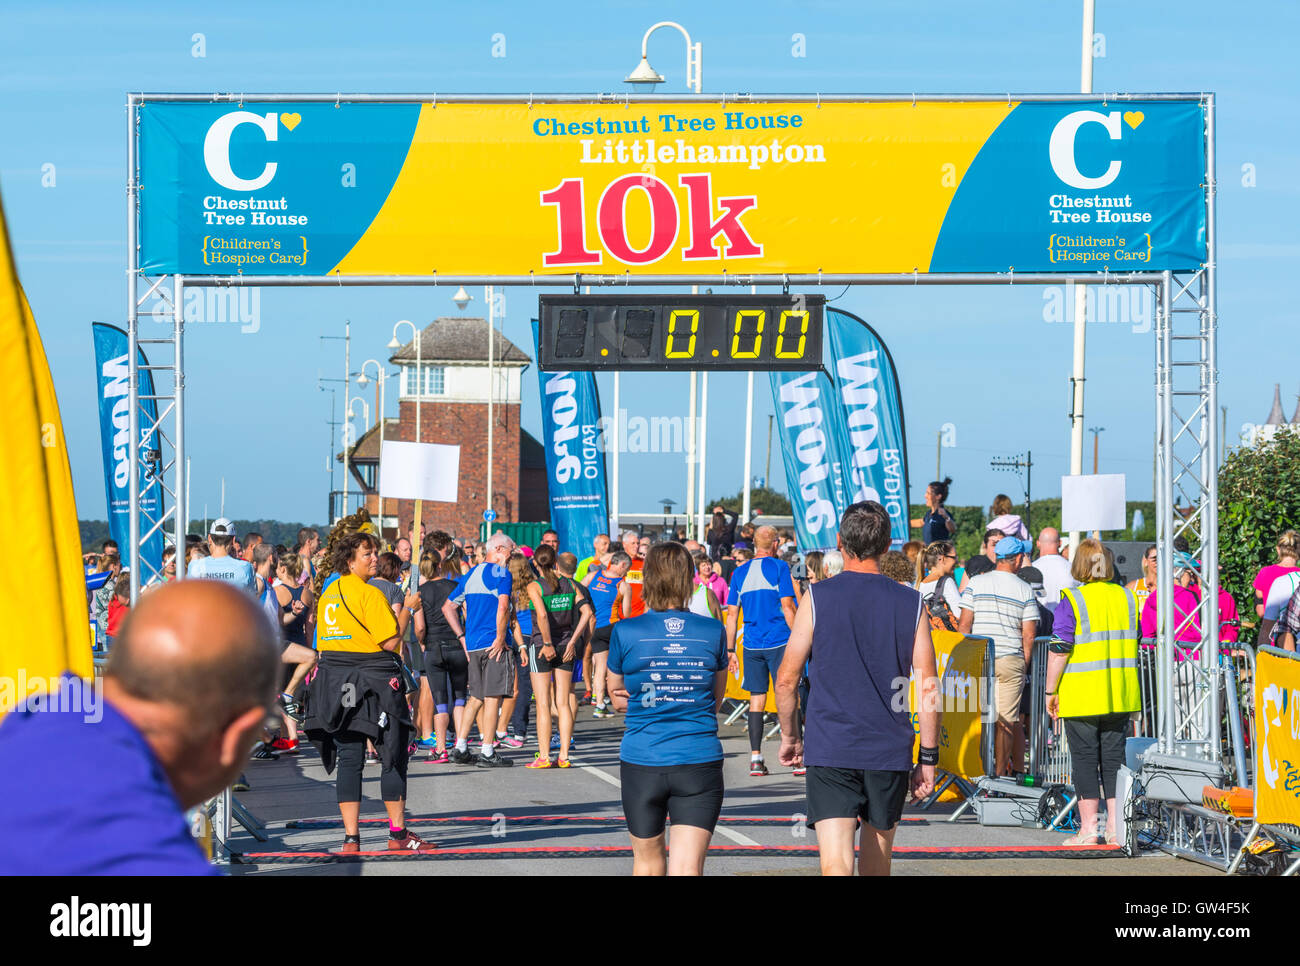 Before the race begins at the Chestnut Tree House 10k charity run in 2016 in Littlehampton, West Sussex, England, - Stock Image